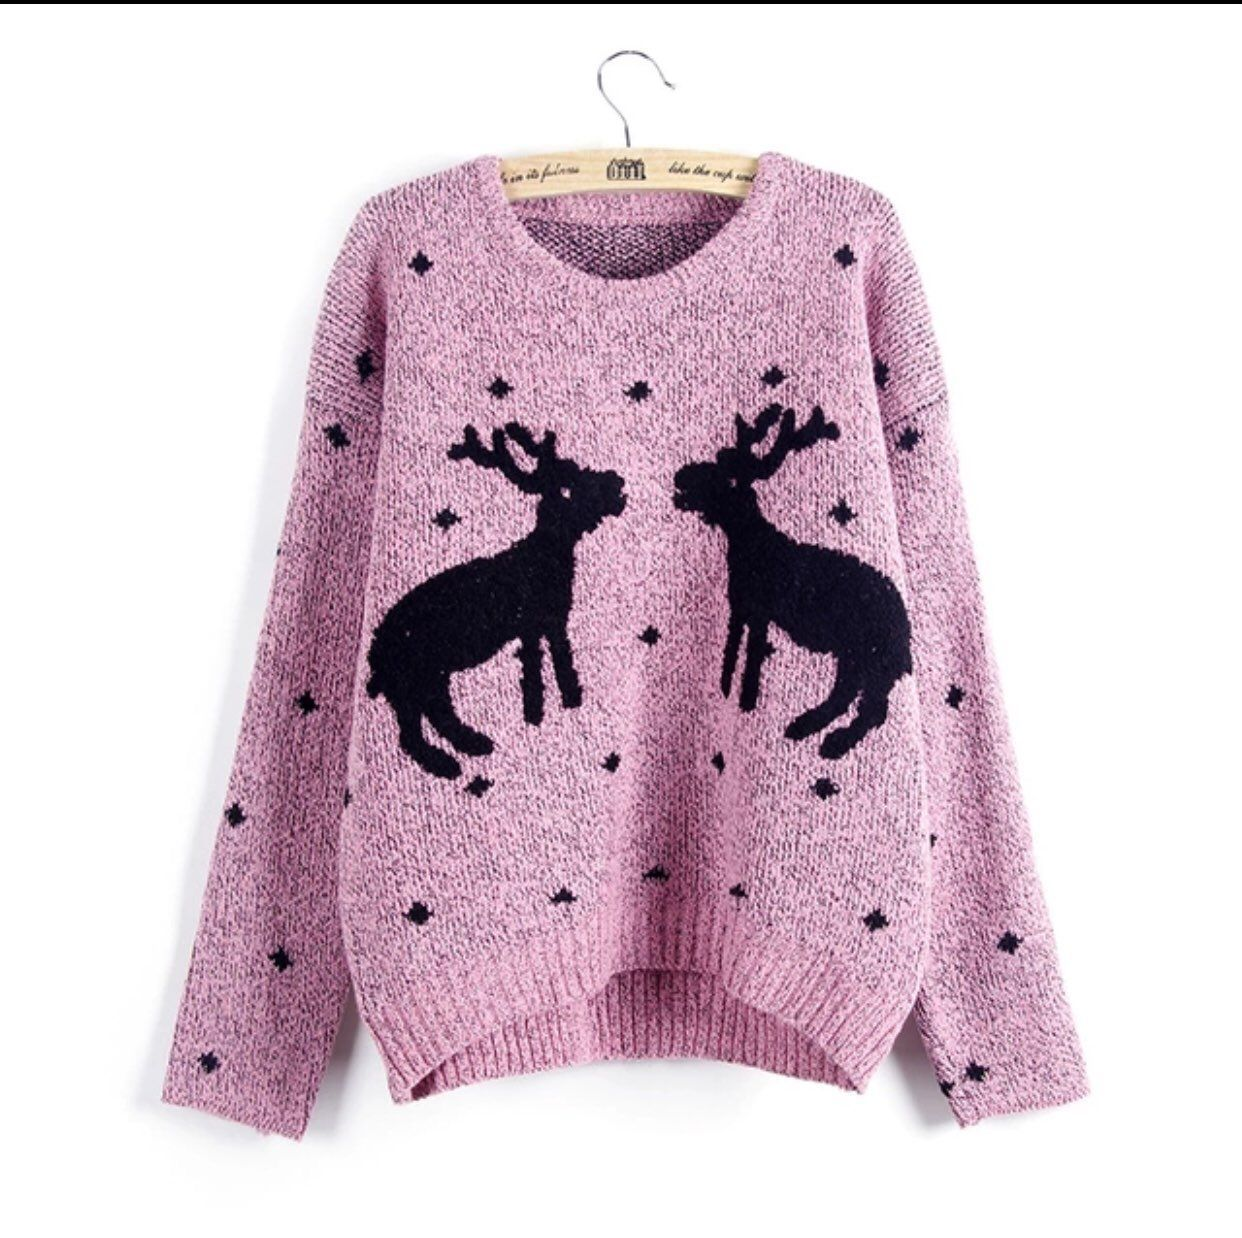 Cotton Reindeer Holiday Sweater - Mercari: BUY & SELL THINGS YOU LOVE